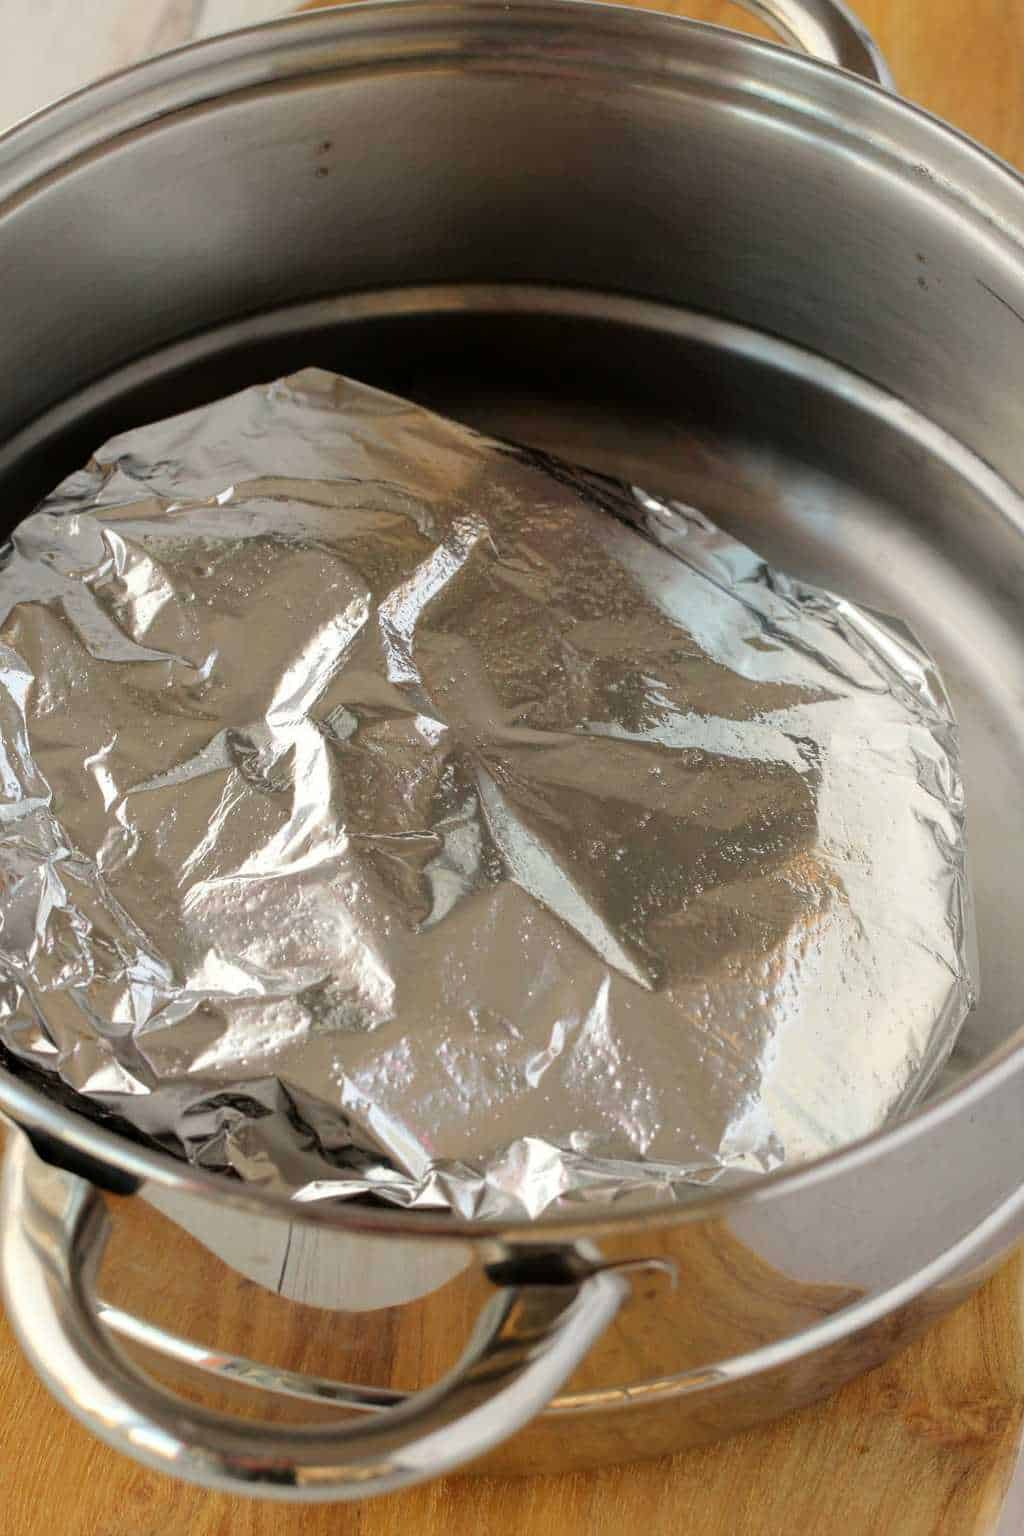 Seitan wrapped in tinfoil and steaming in a steamer pot.